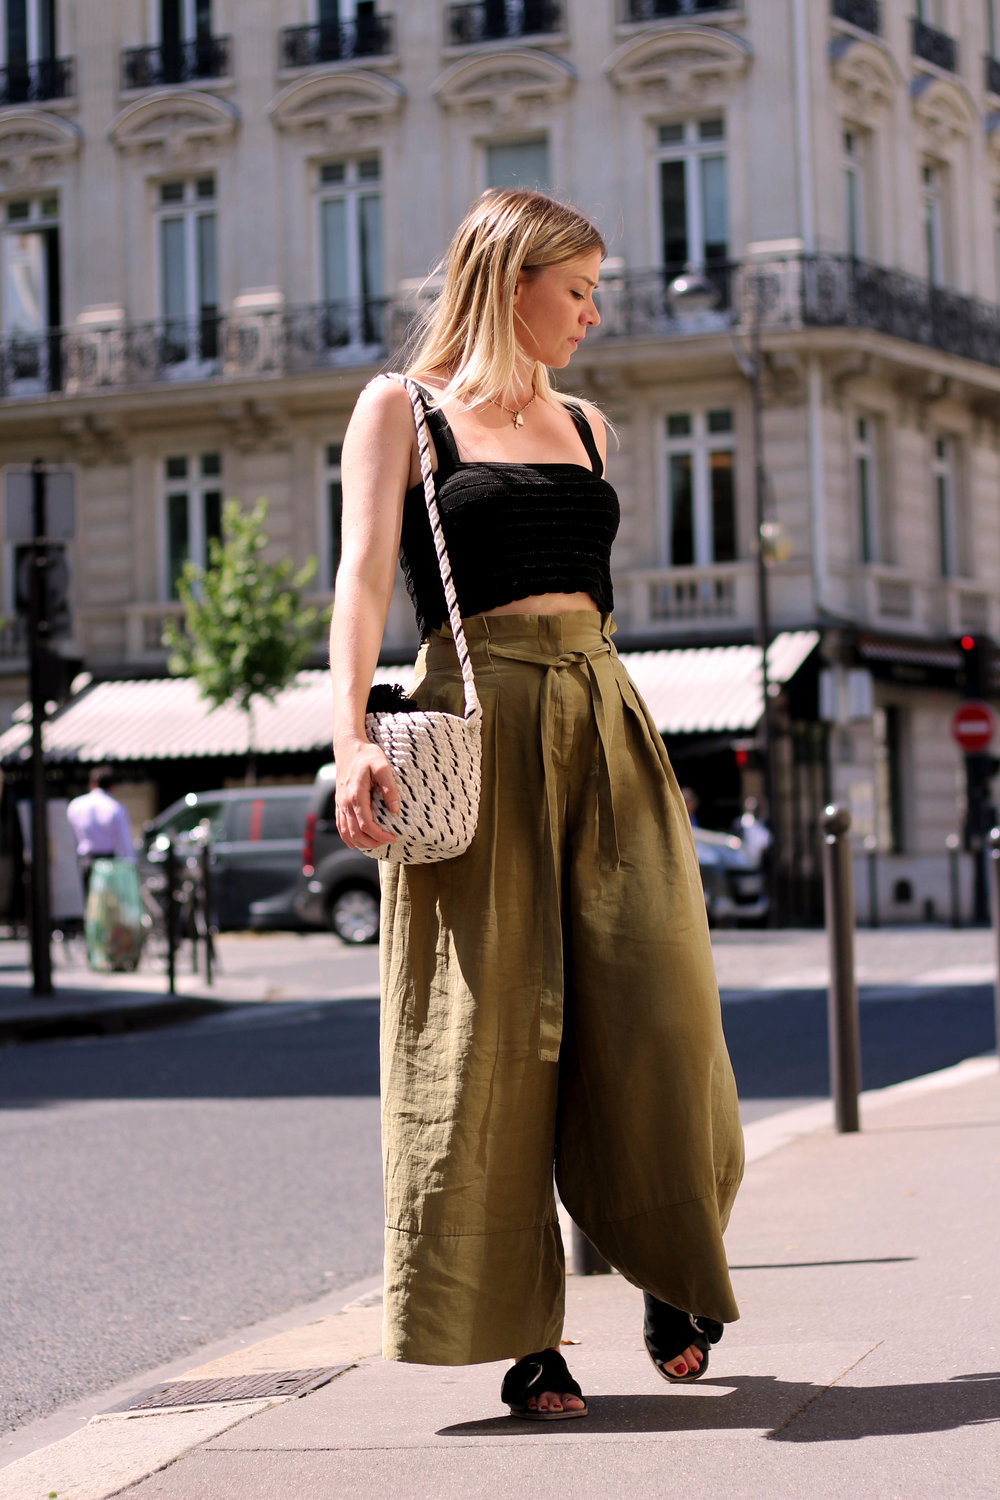 PARIS, CROP TOP, PAPERBAG TROUSERS, NORTHERN MAGPIE, JOEY TAYLOR 2